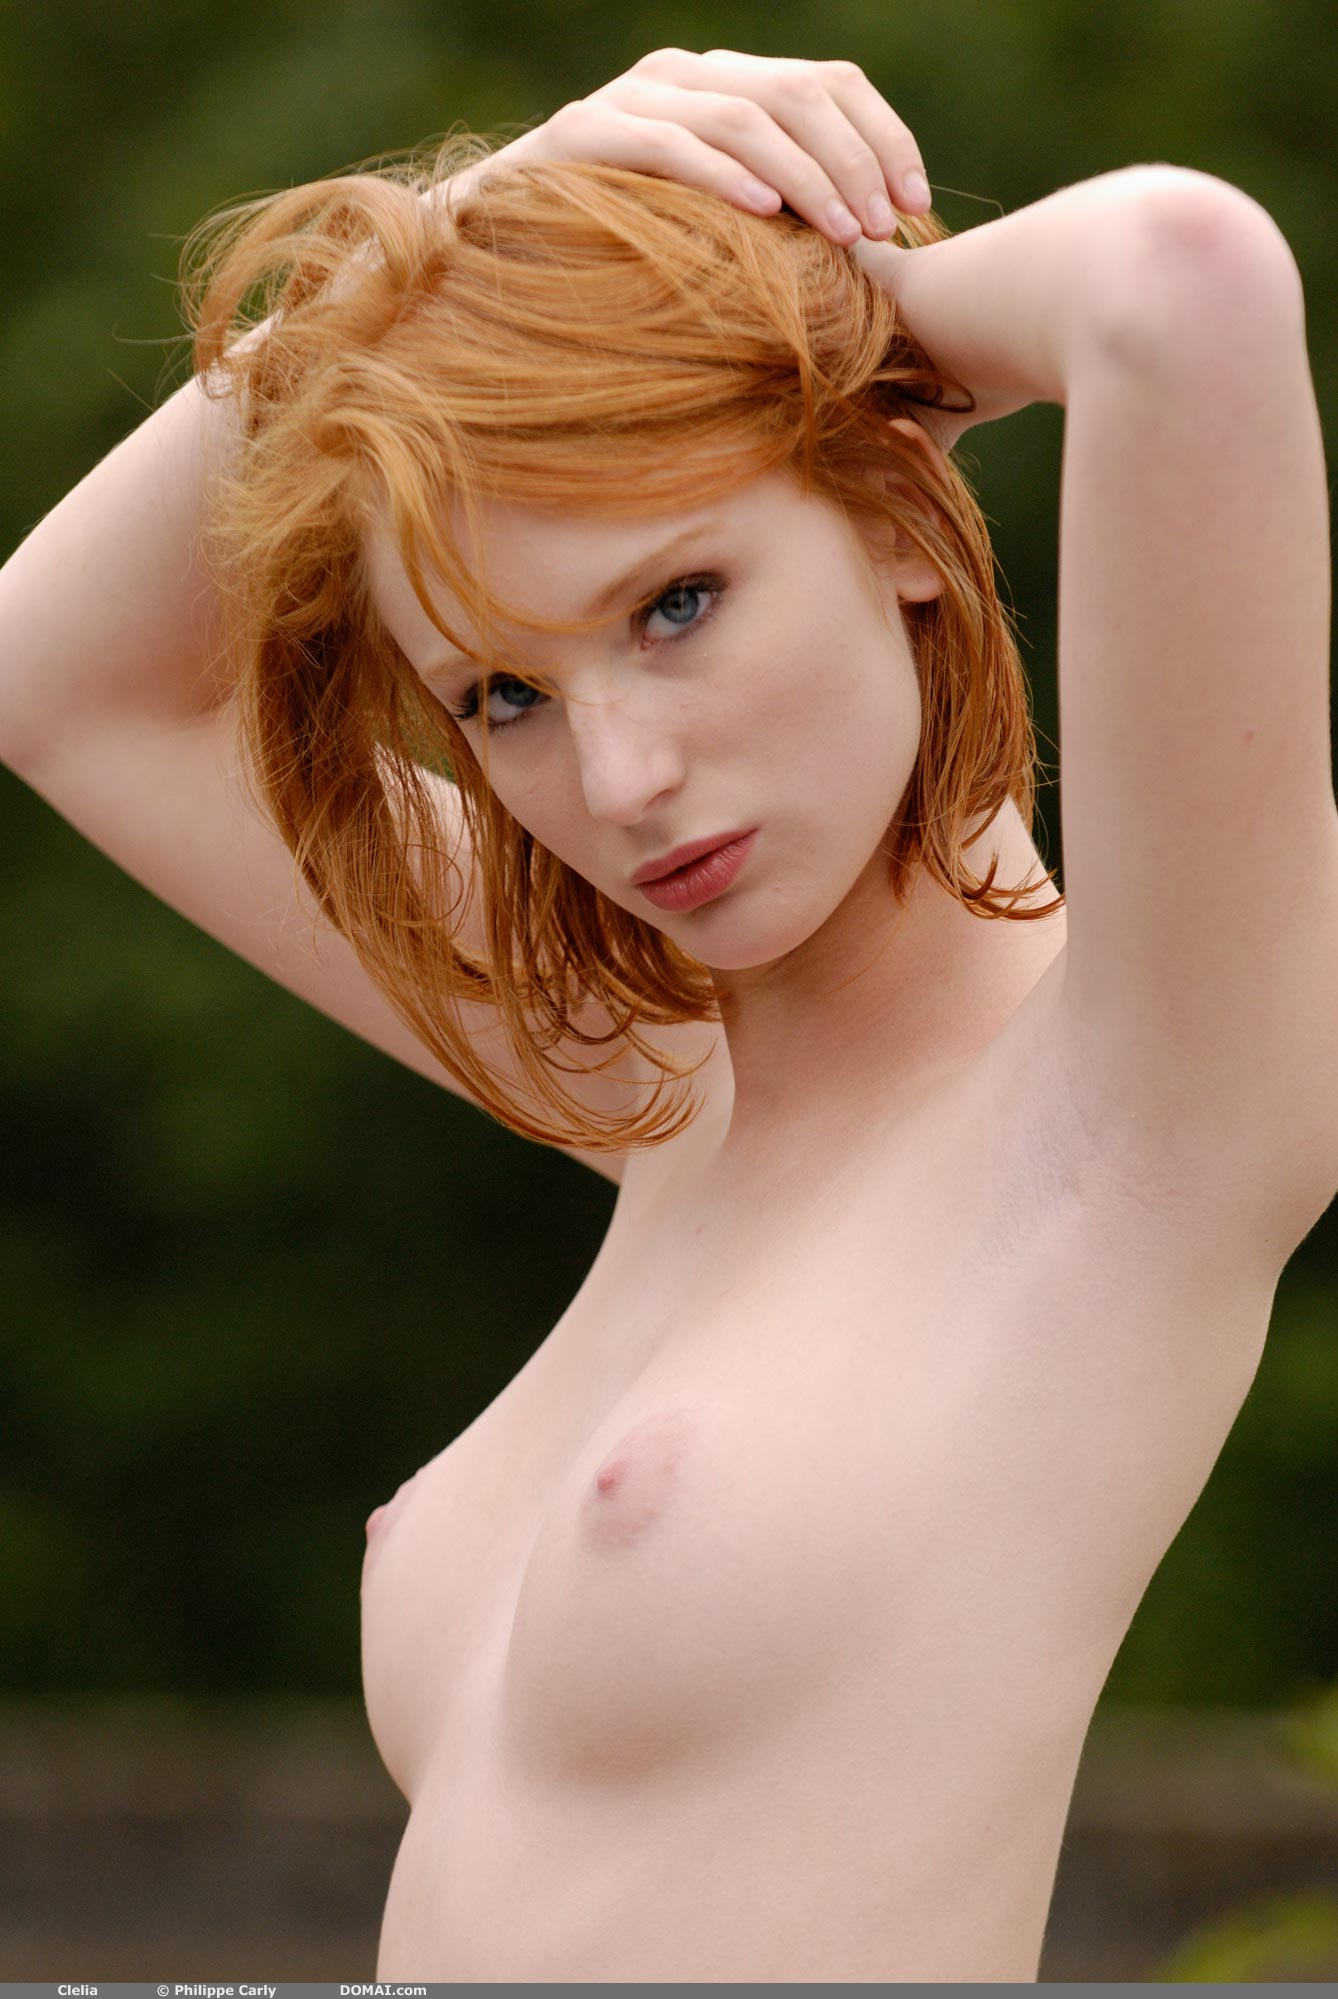 Hot Redhead Porn Stars Hot Sexy Naked Beauty Ginger Redheads Pale Owk